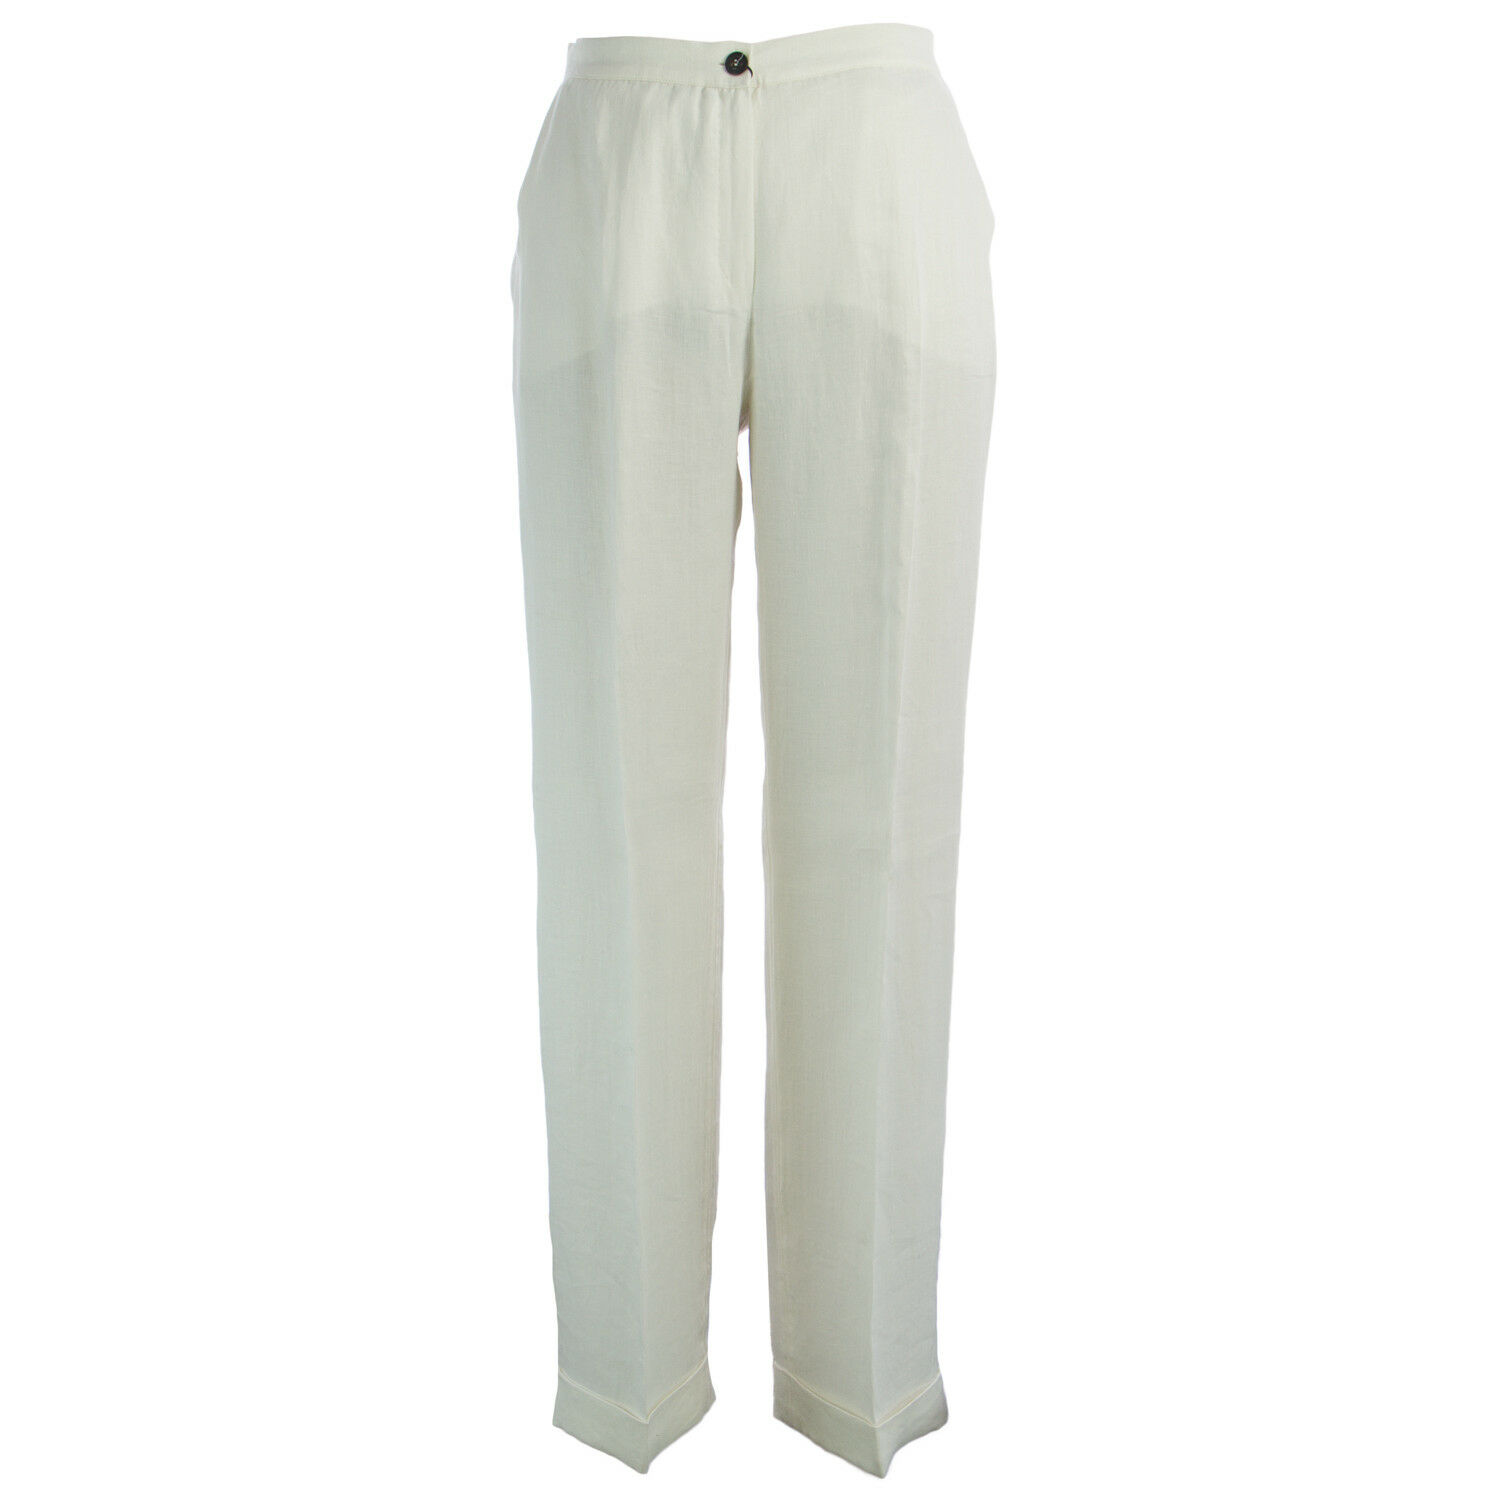 MARINA RINALDI Women's White Raquel High Waisted Pants  505 NWT